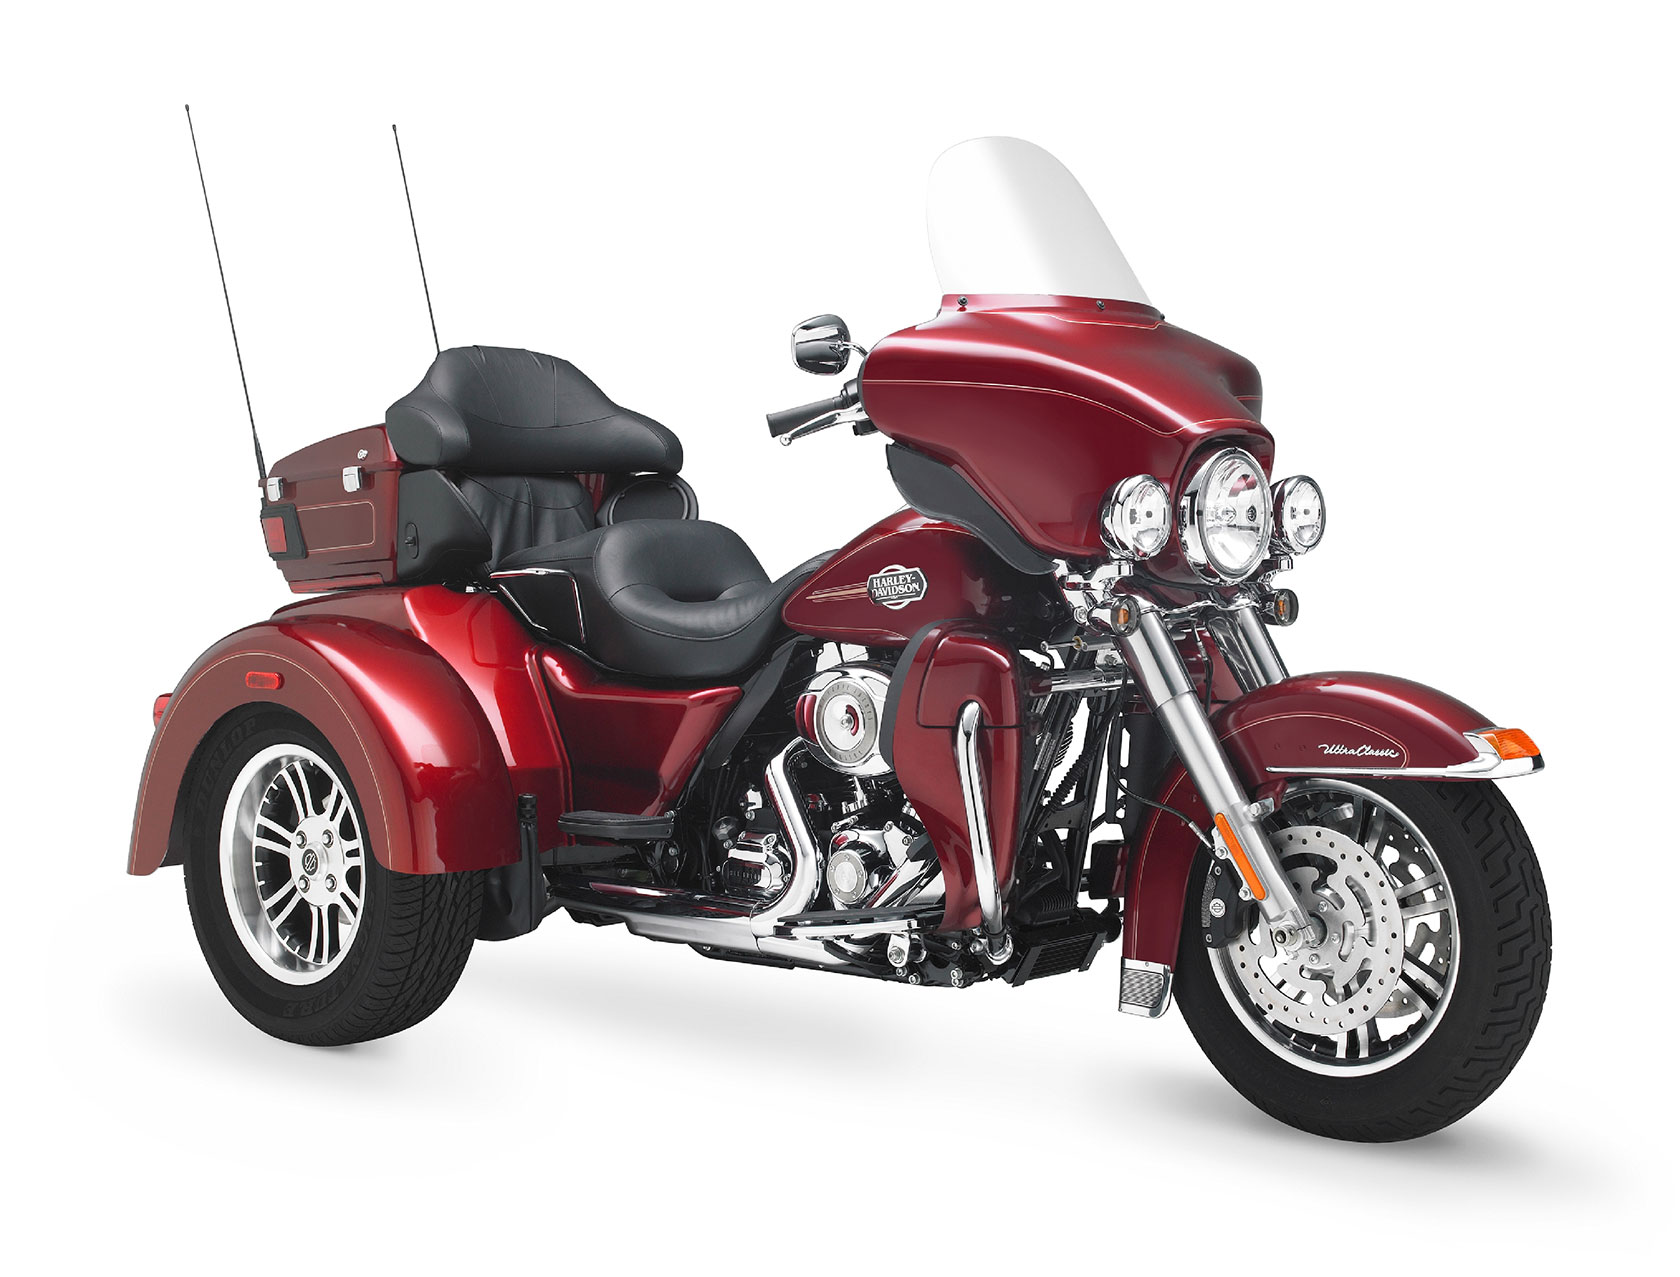 2010 harley davidson tri glide ultra classic flhtcutg. Black Bedroom Furniture Sets. Home Design Ideas